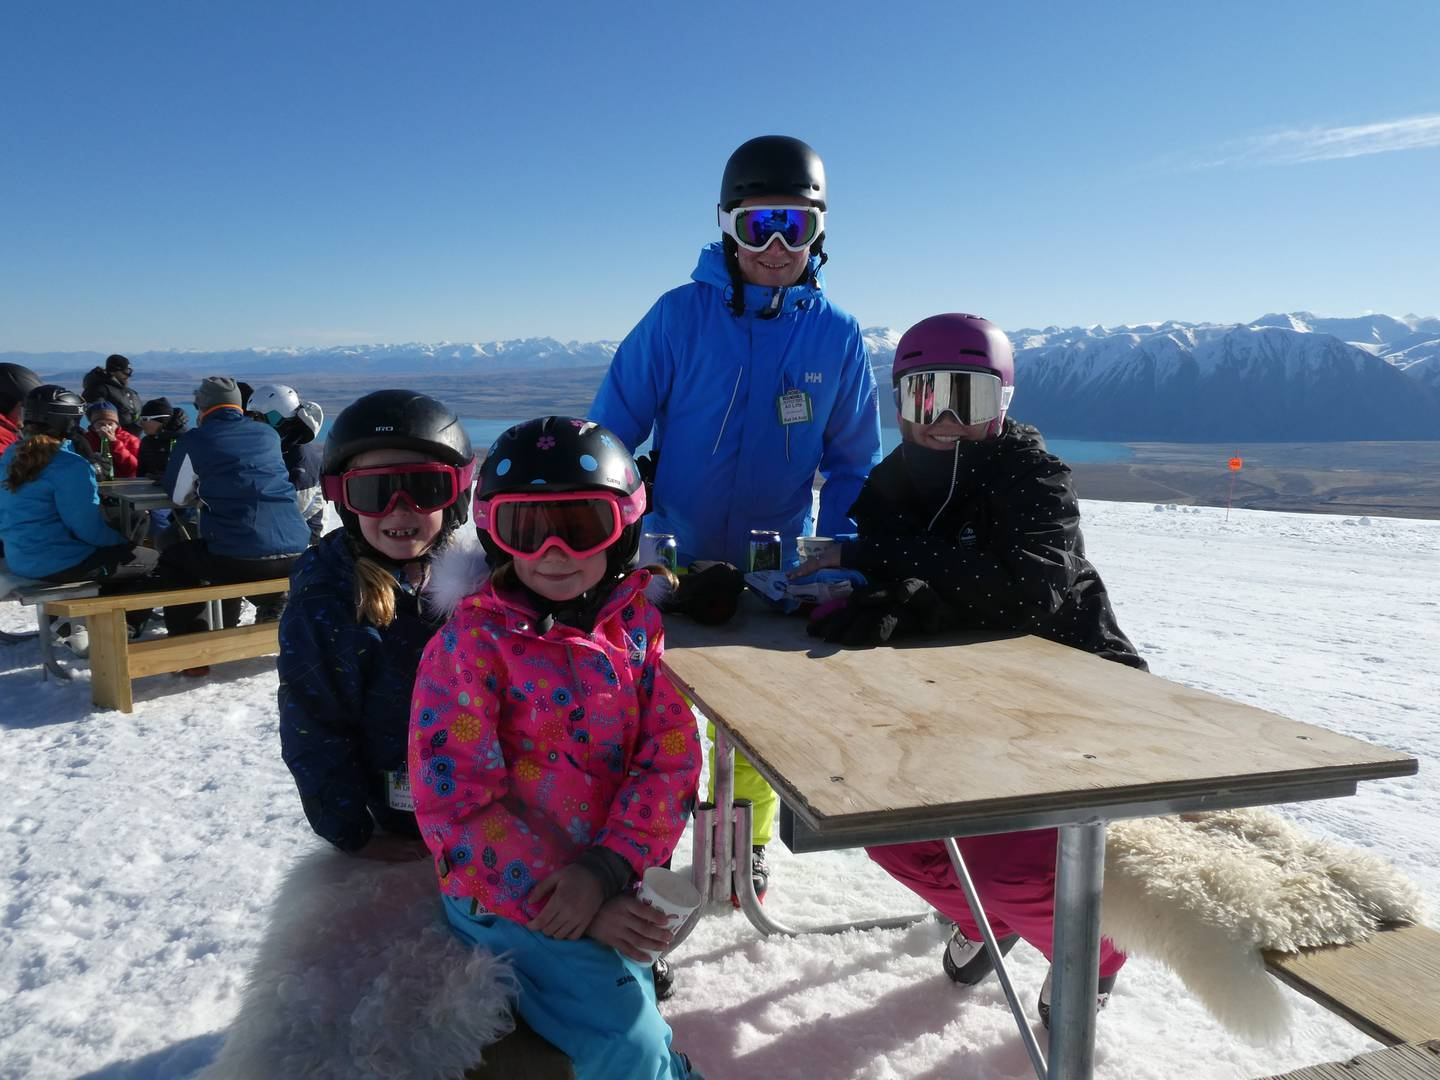 Family relaxation time at Roundhill ski field's Von Brown Mountain Cafe. Photo: Huw Kingston / NZH